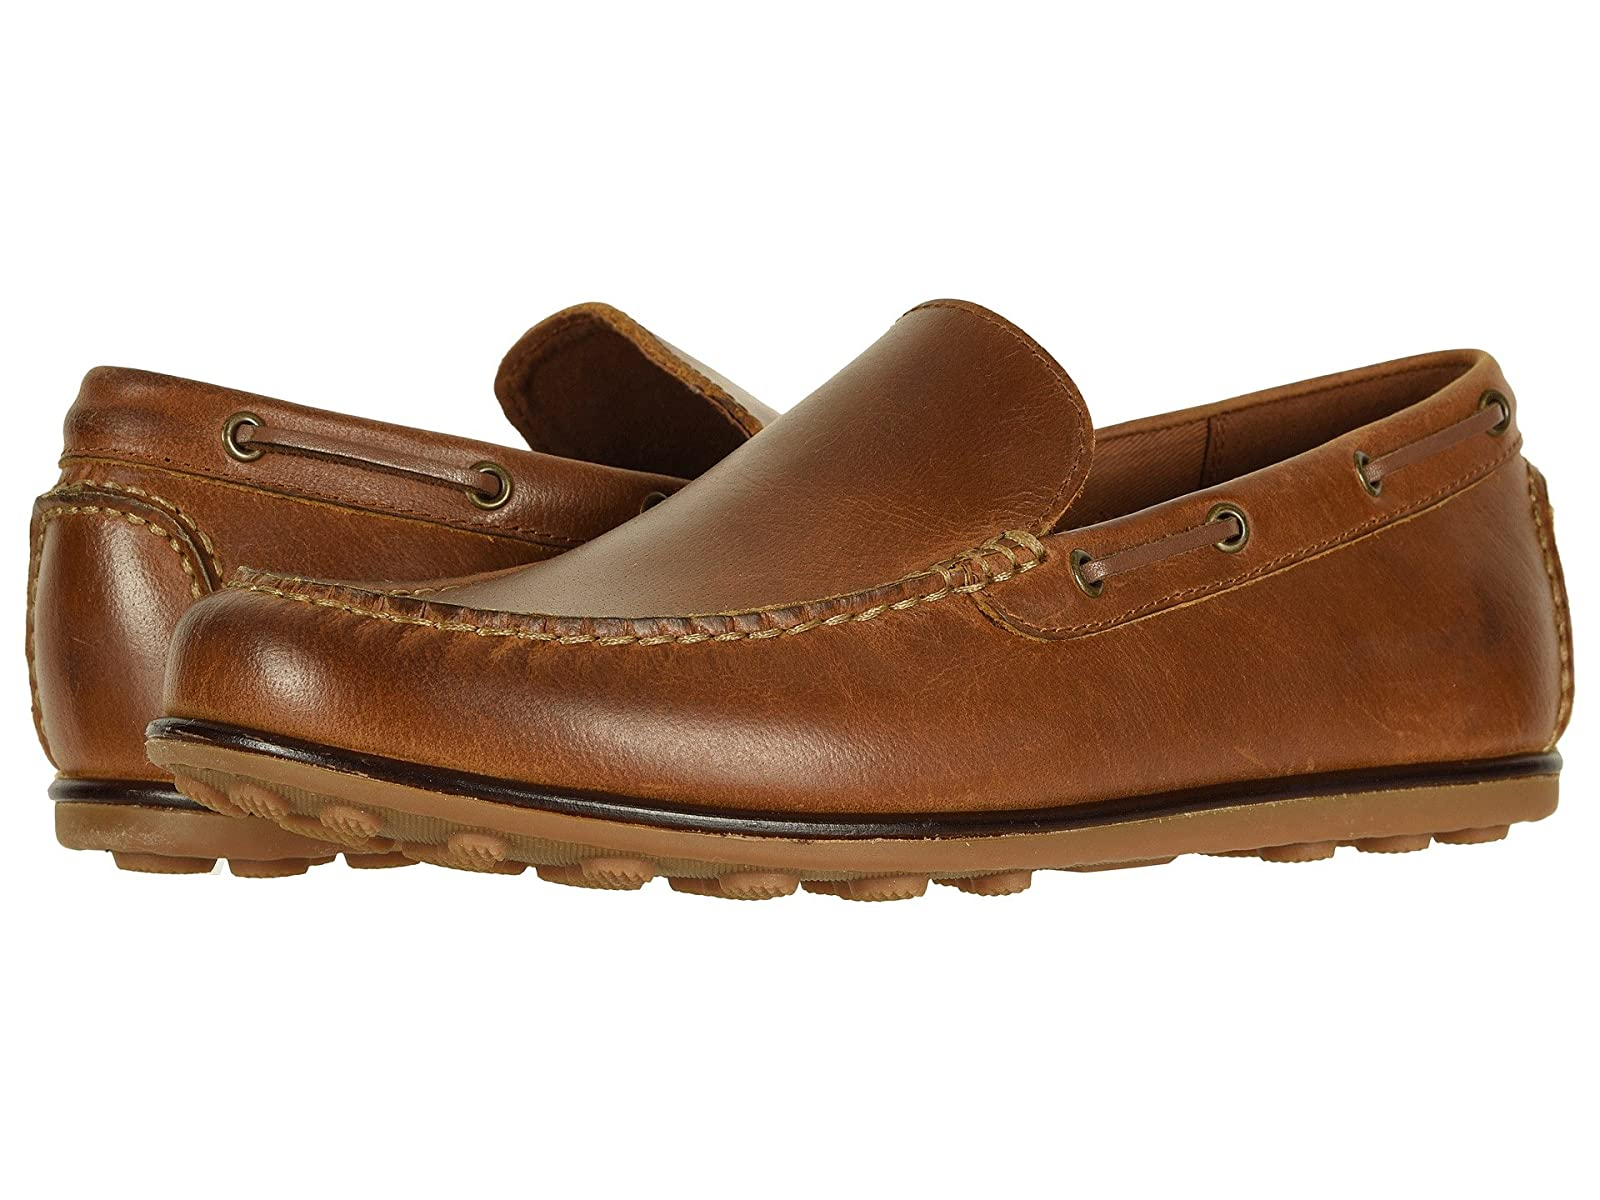 Frye Venetian Driving MocAtmospheric grades have affordable shoes